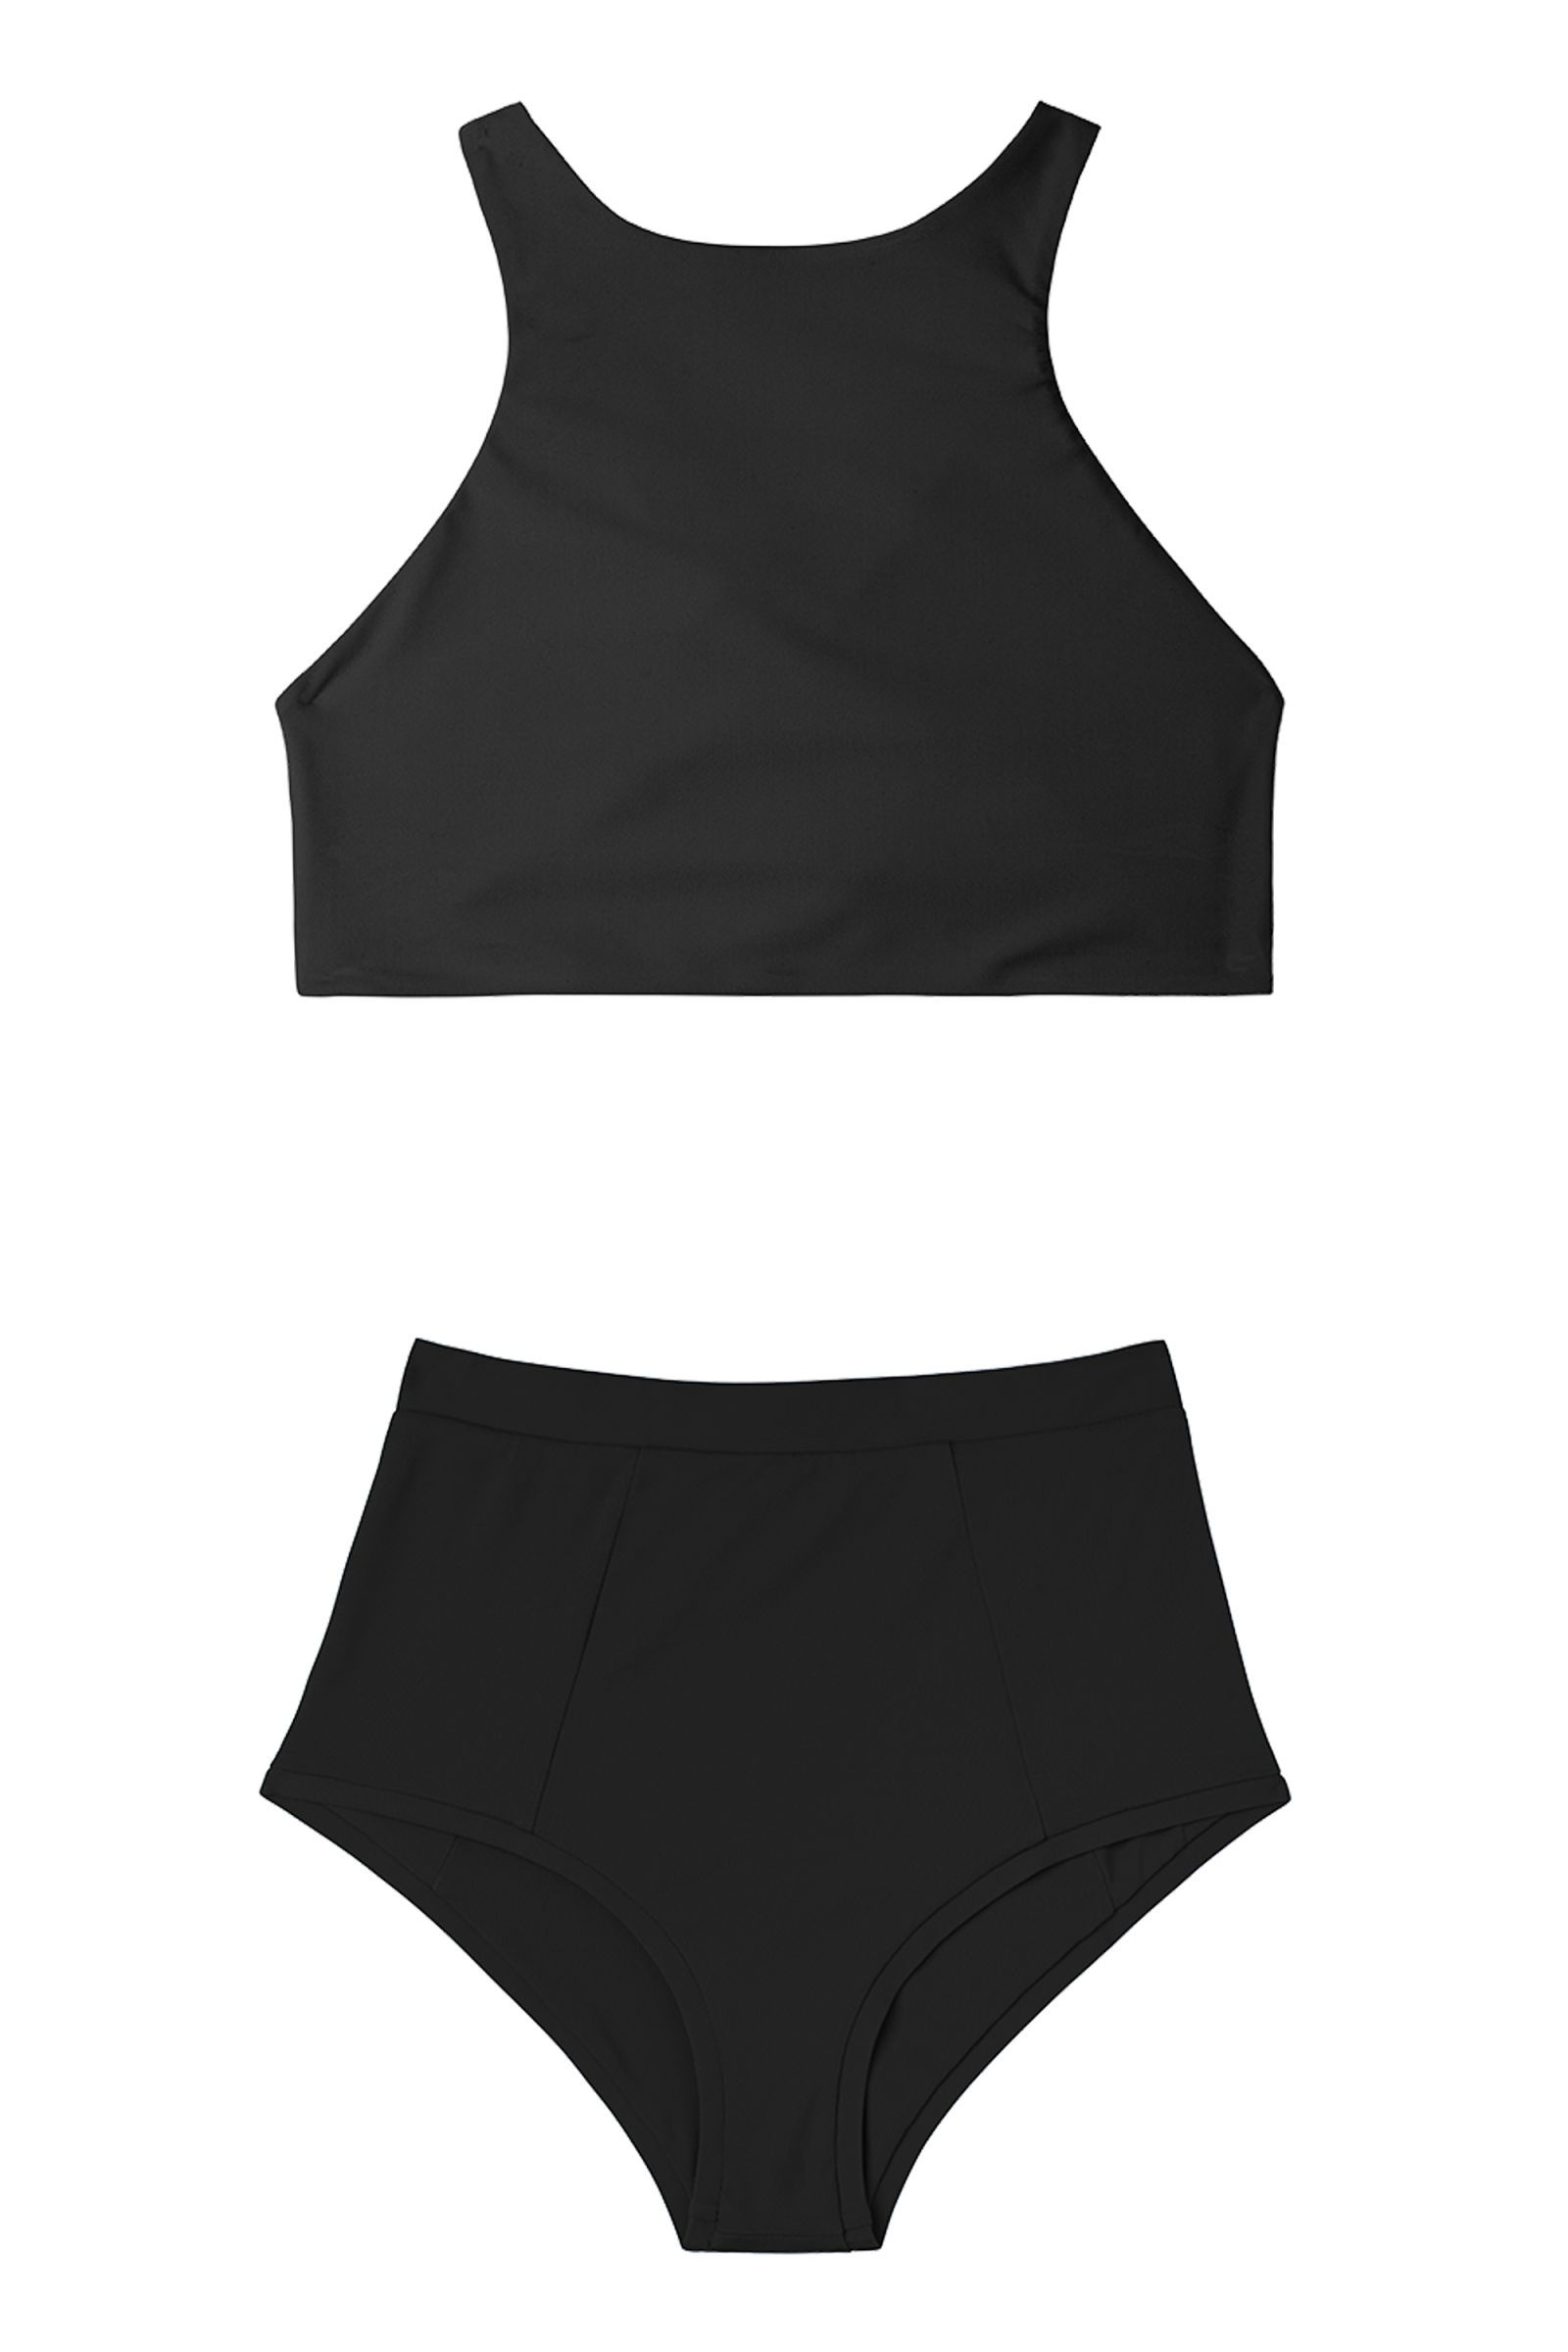 fcbe1d8291 23 High-Waisted Bikinis Because You're Probably Ready for a Vacation.  Bikyni The Crop, $50; bikyni.com Bikyni The High Waist, $50; bikyni.com